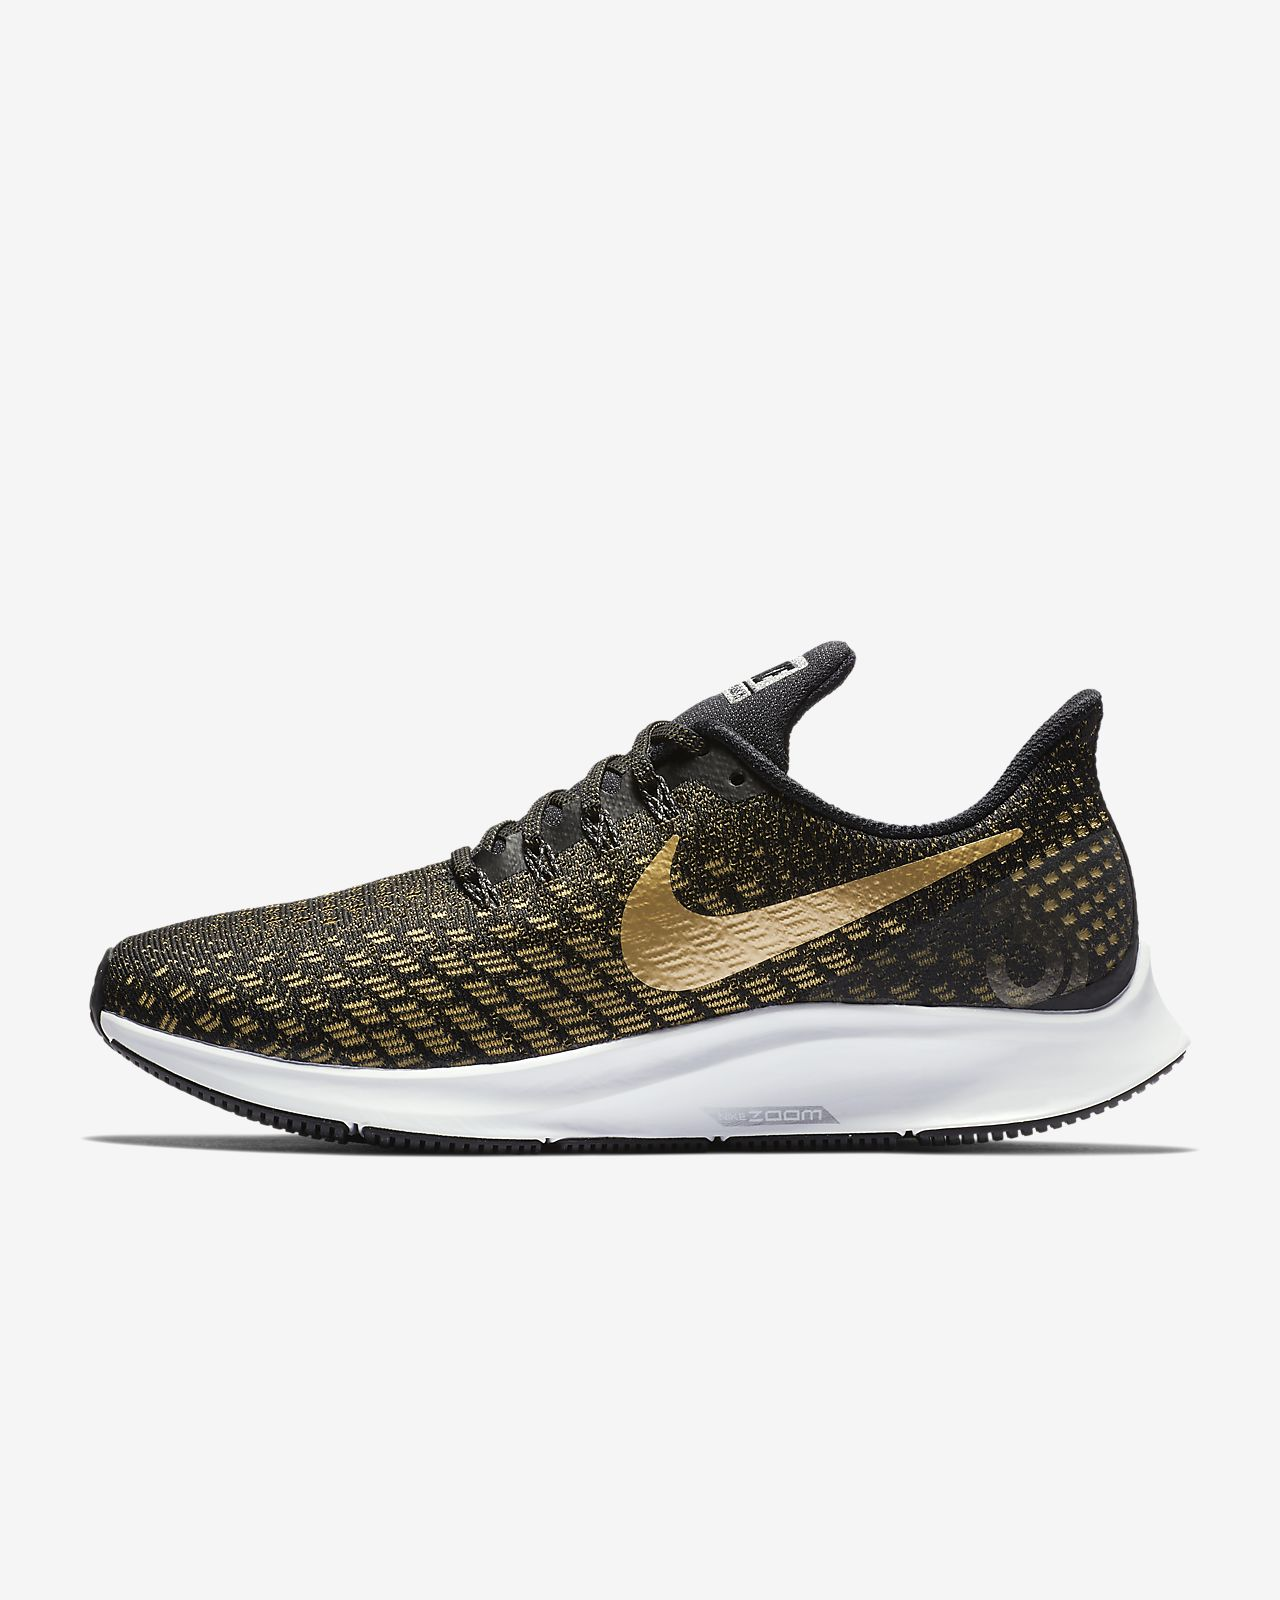 new concept 11409 ccc2a Nike Air Zoom Pegasus 35 Metallic Women's Running Shoe. Nike.com